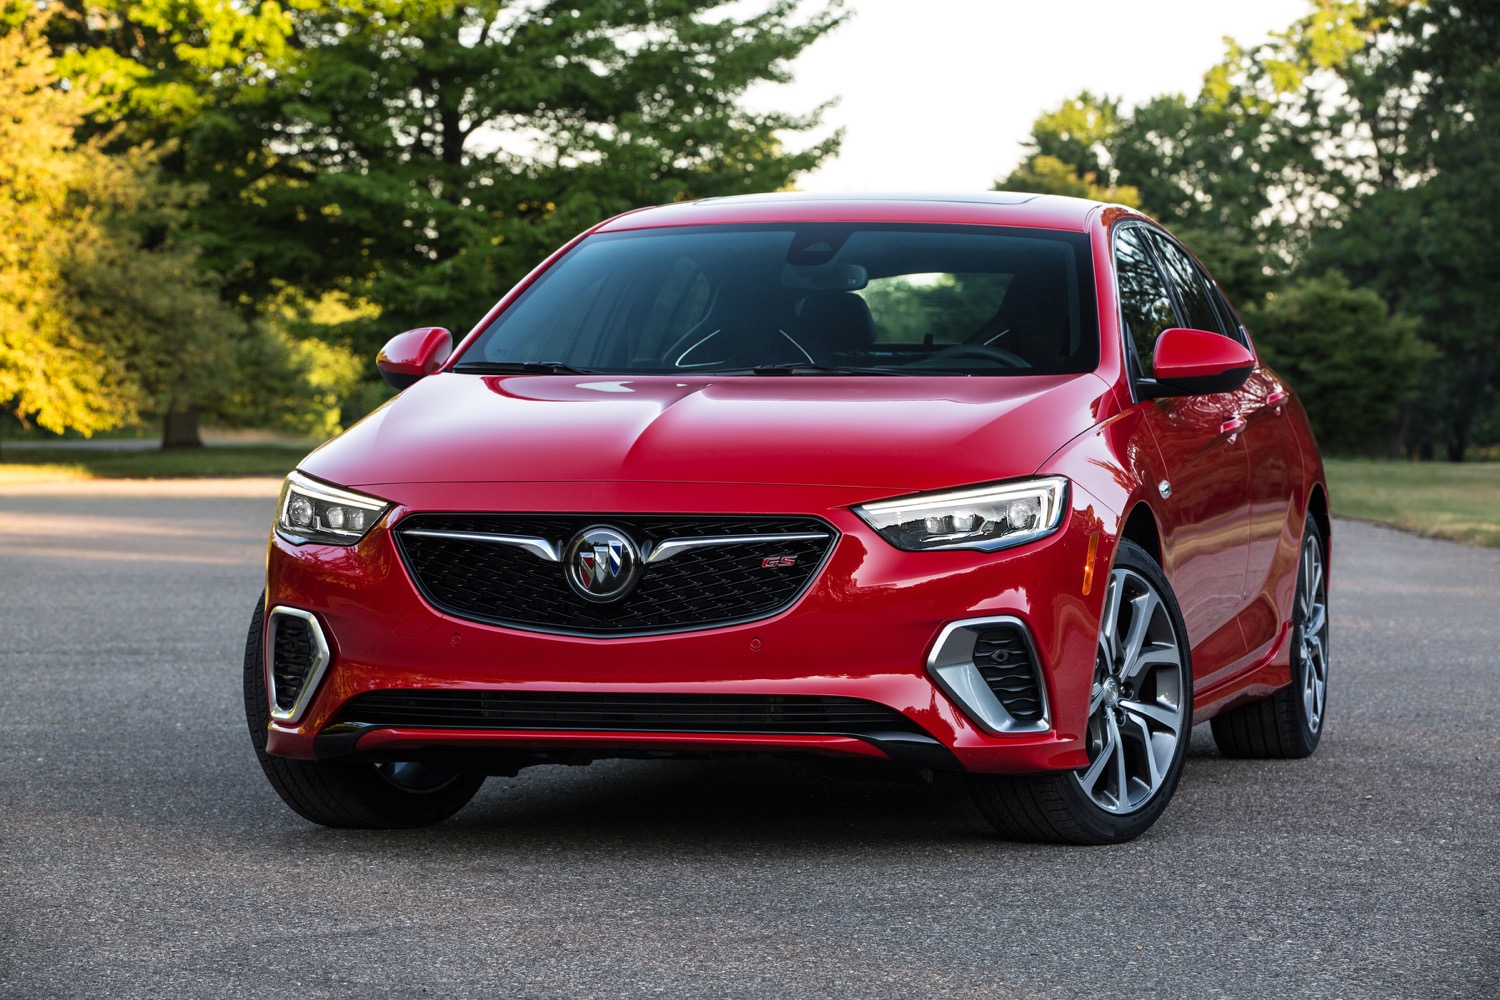 We Have Some Beef With This 2018 Buick Regal Gs Review | Gm 2021 Buick Regal Specs, Price, 0-60